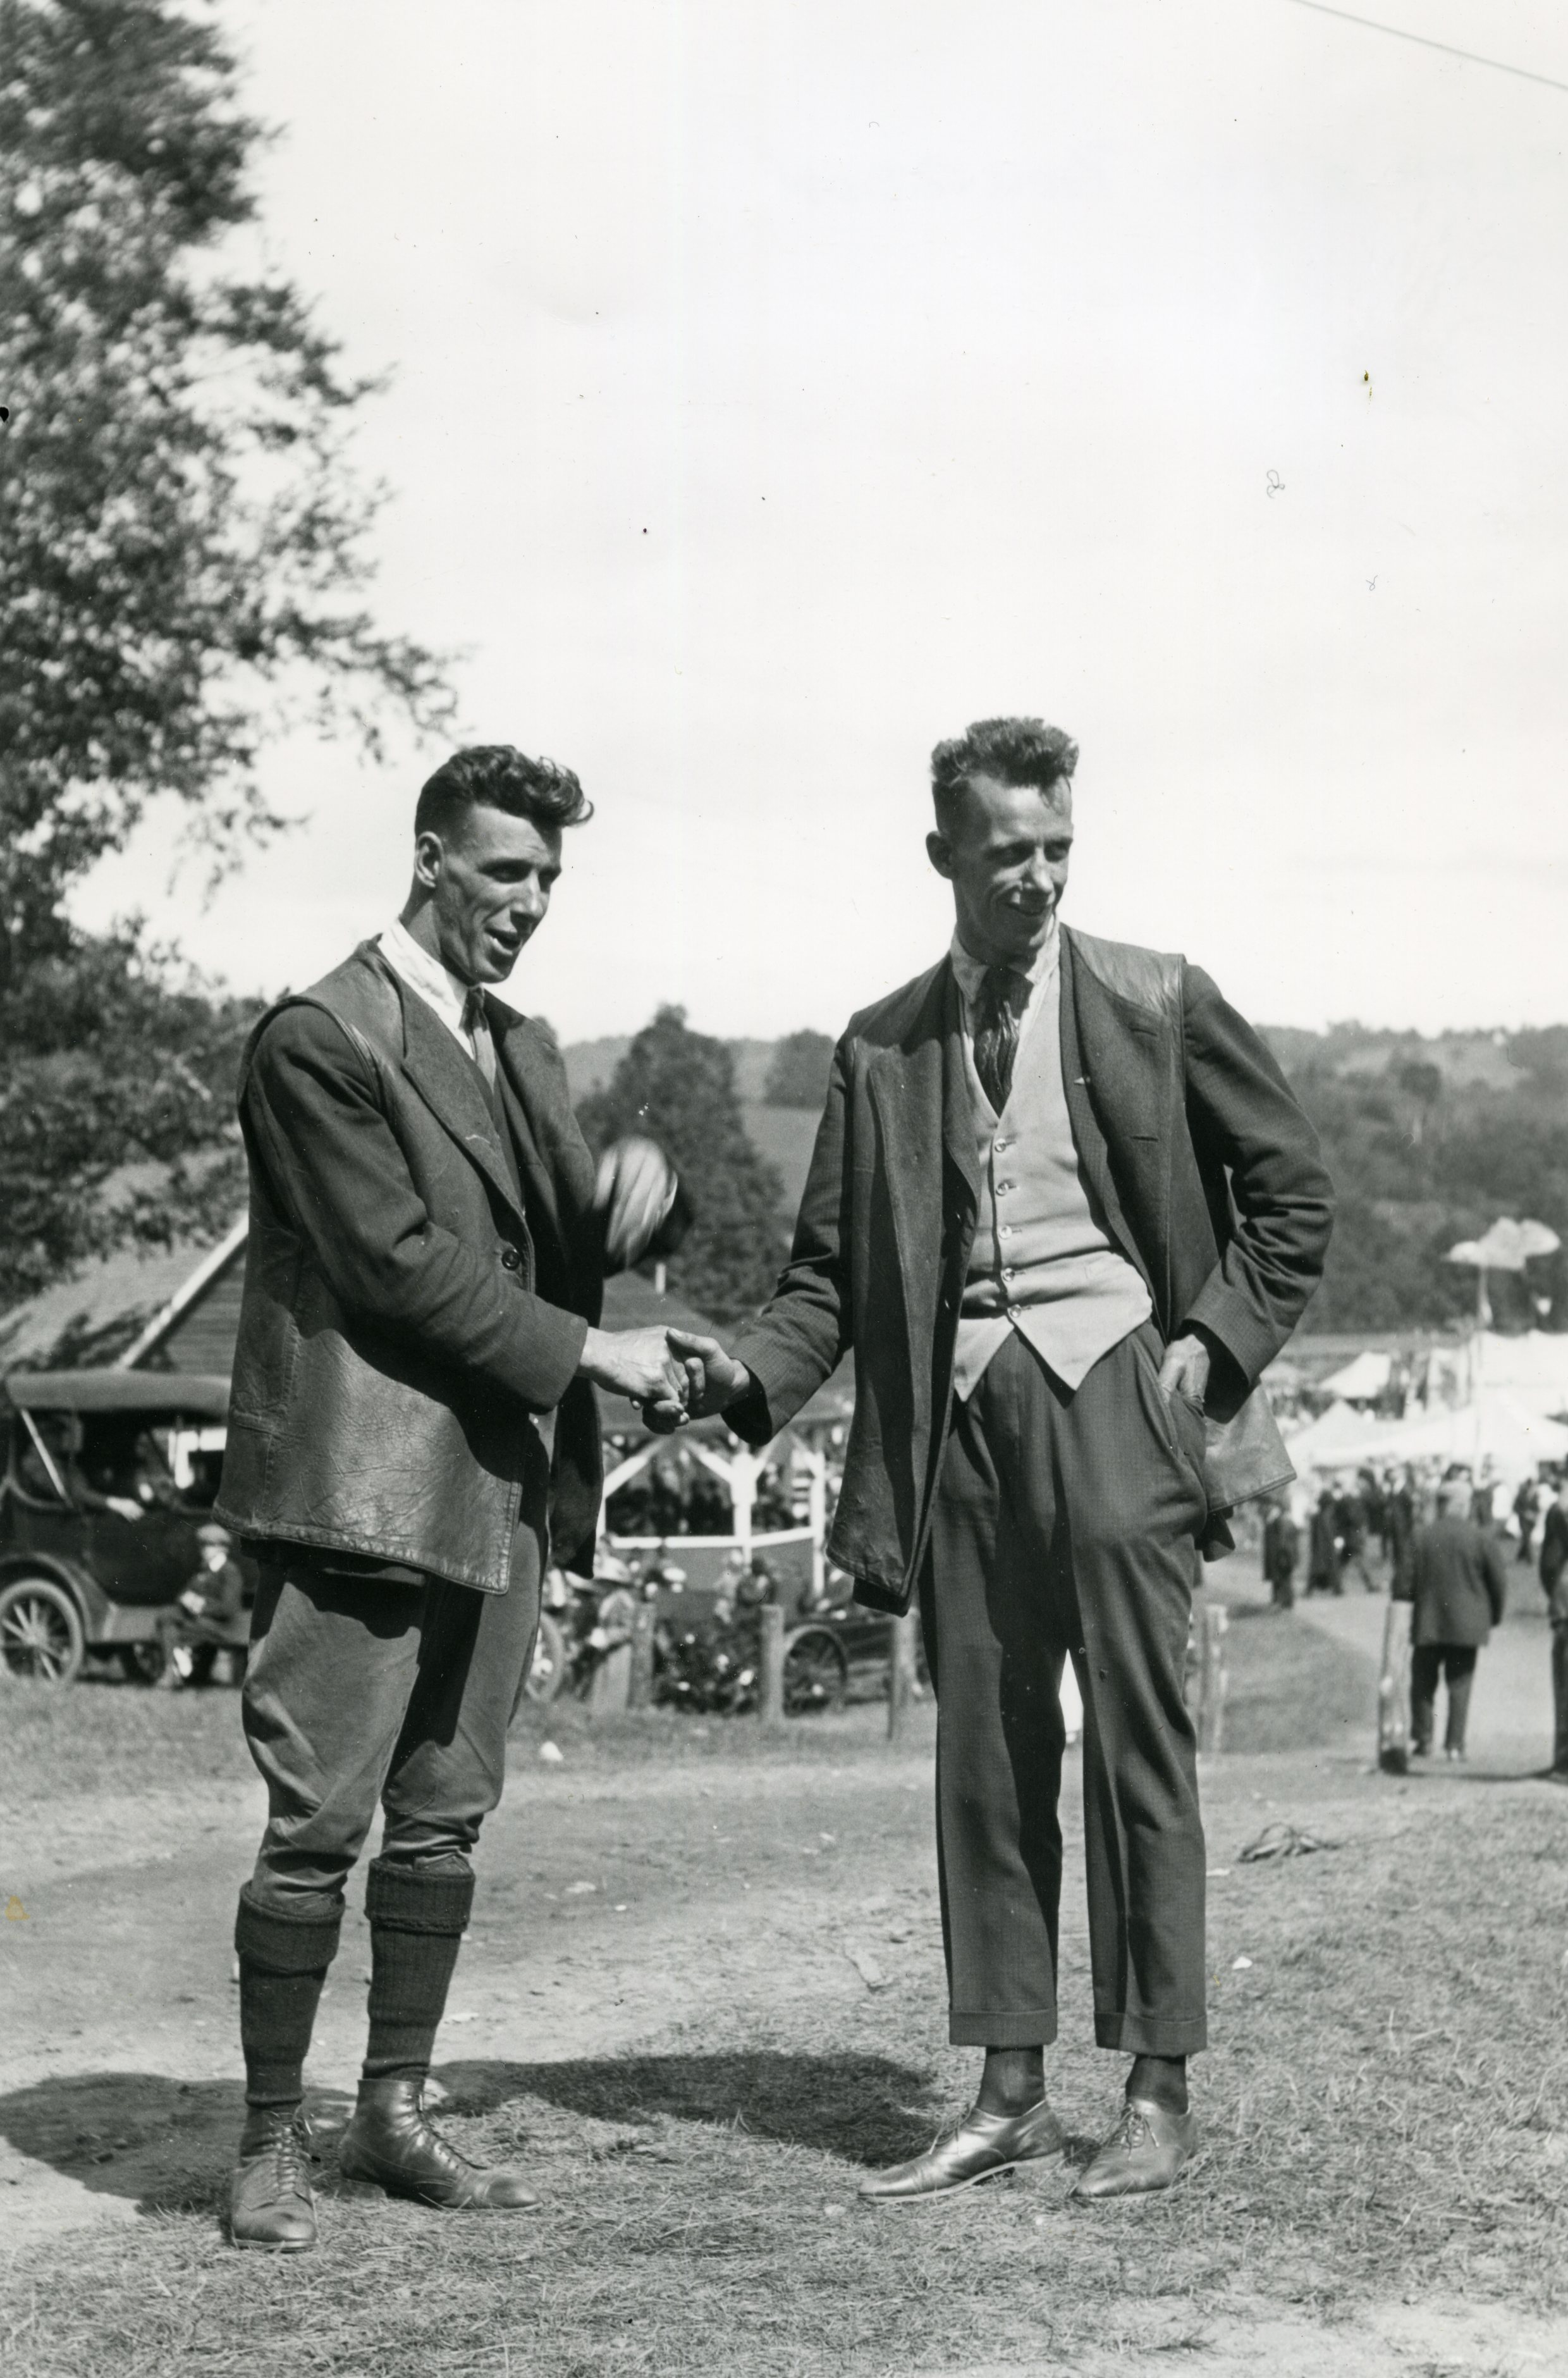 "An article in The Vermont Standard, dated August 2, 1917, notes that Allan Bourdon and his brother visited Woodstock for the Windsor County Fair that year as well. That article states: ""The Bourdon Brothers, Leo and Allan, two Woodstock boys, landed on the Country Club golf course last Saturday, the first airplane ever to alight in this town, where they came to give exhibitions at the Windsor County Fair this week. Allan Bourdon, who is tester of new-made machines at the Gallaudet airplane establishment in Greenwich, R.I., is the flyer, and Leo Bourdon comes as his assistant."